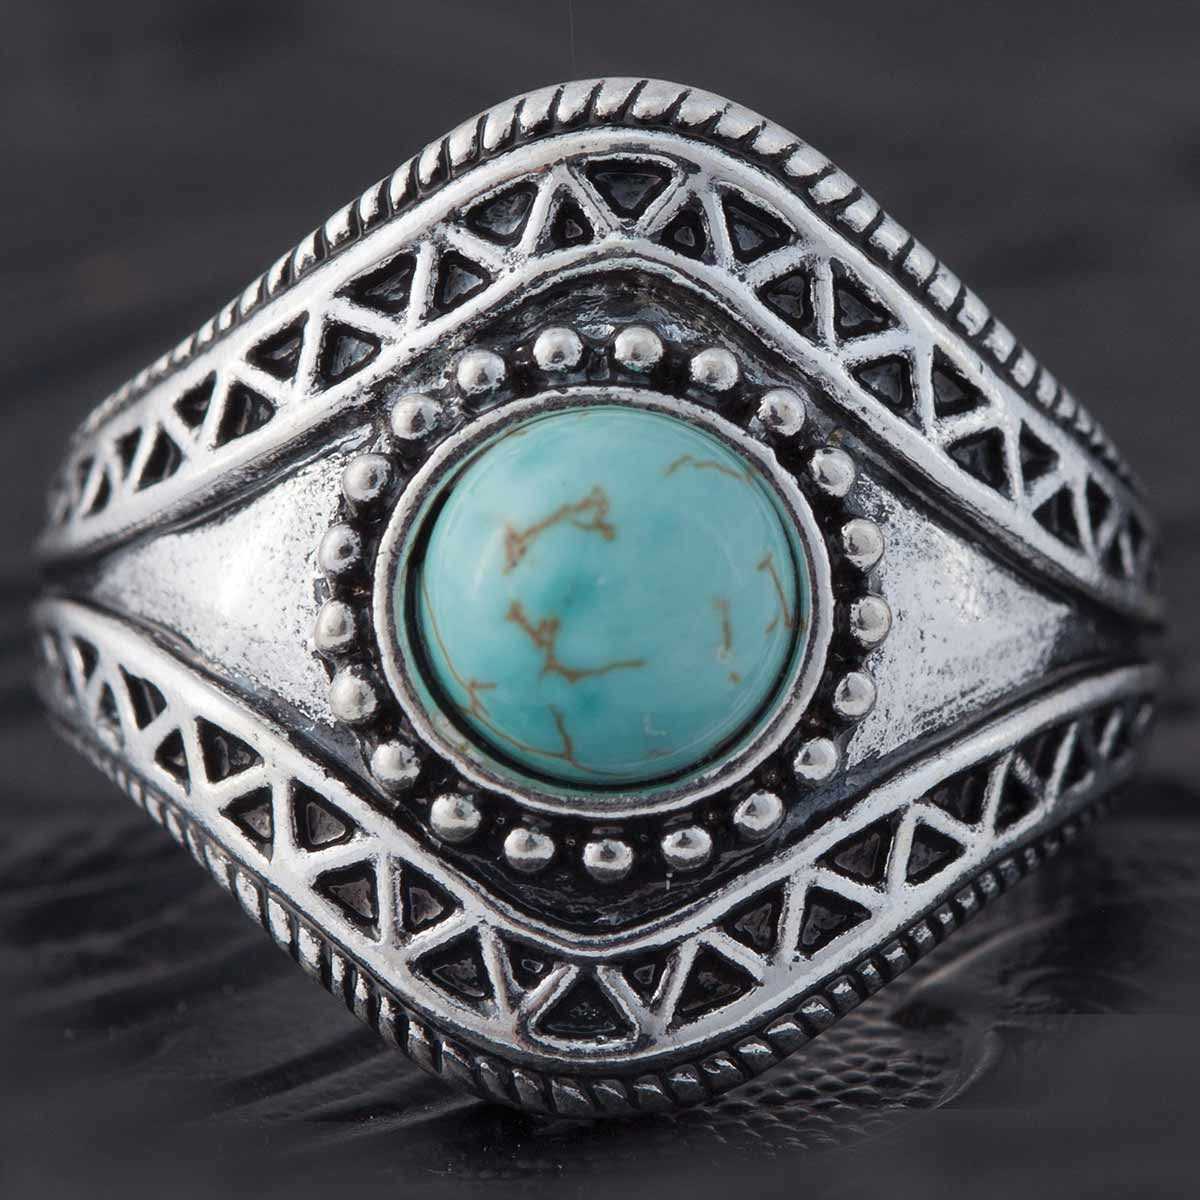 SILVER AND TURQUOISE RING SIZE 8